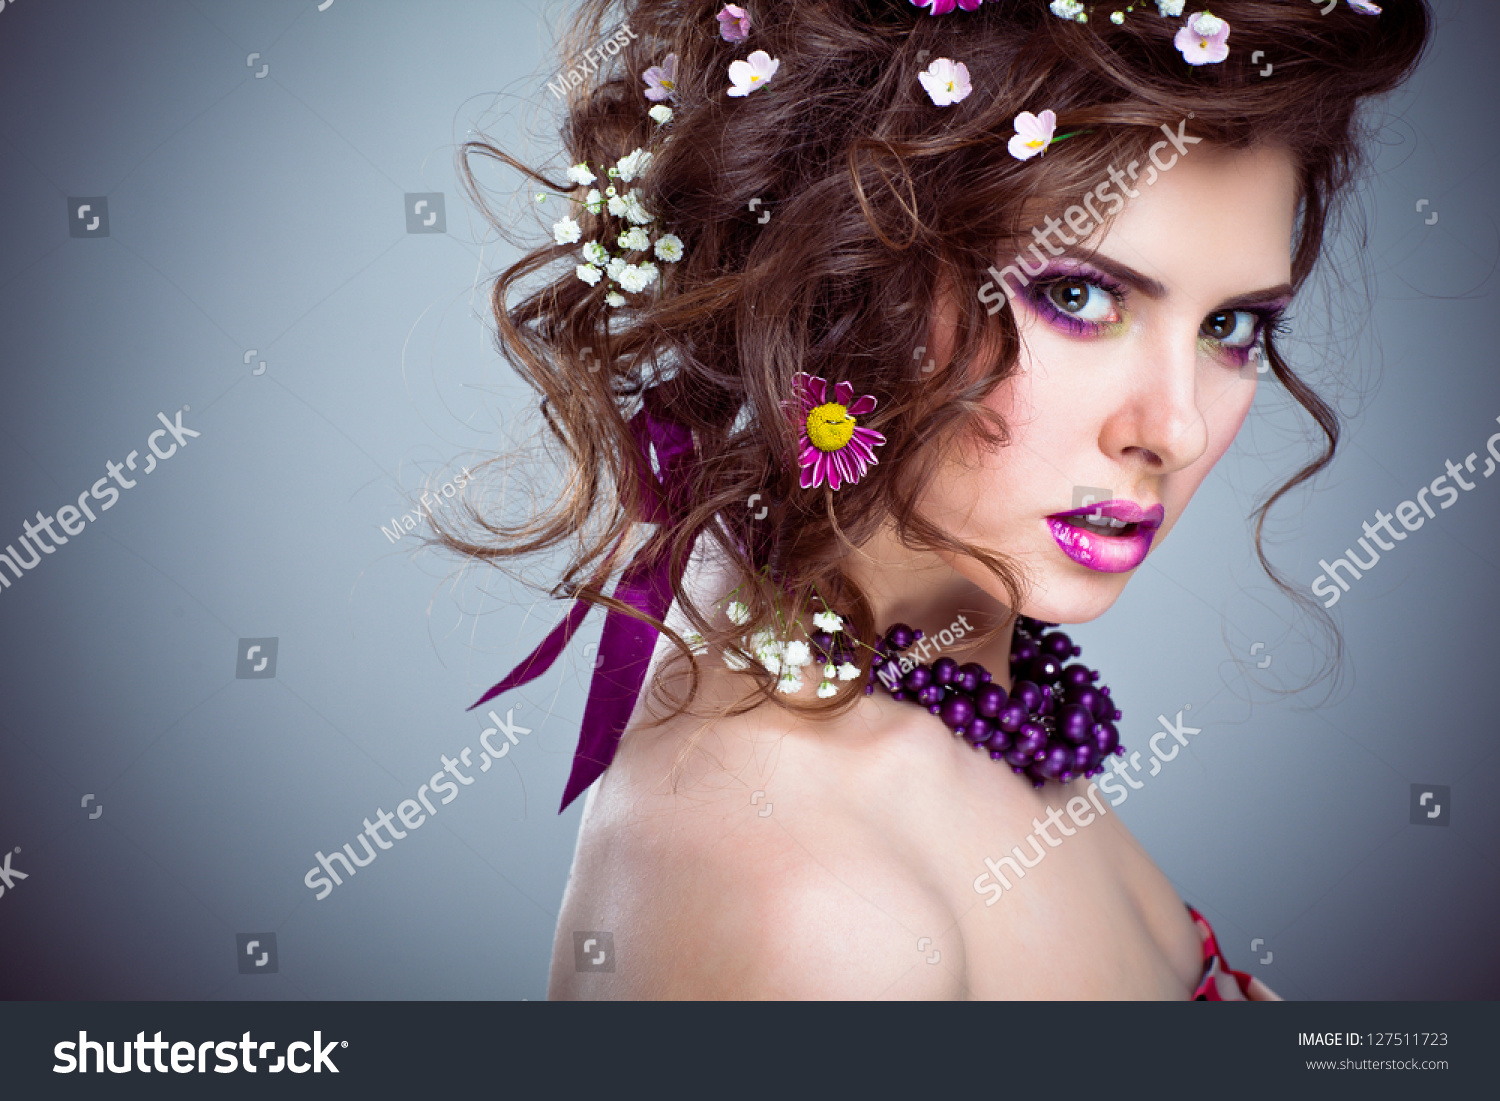 Young beautiful woman flowers her hair stock photo 127511723 young beautiful woman with flowers in her hair and bright artistic makeup dhlflorist Gallery